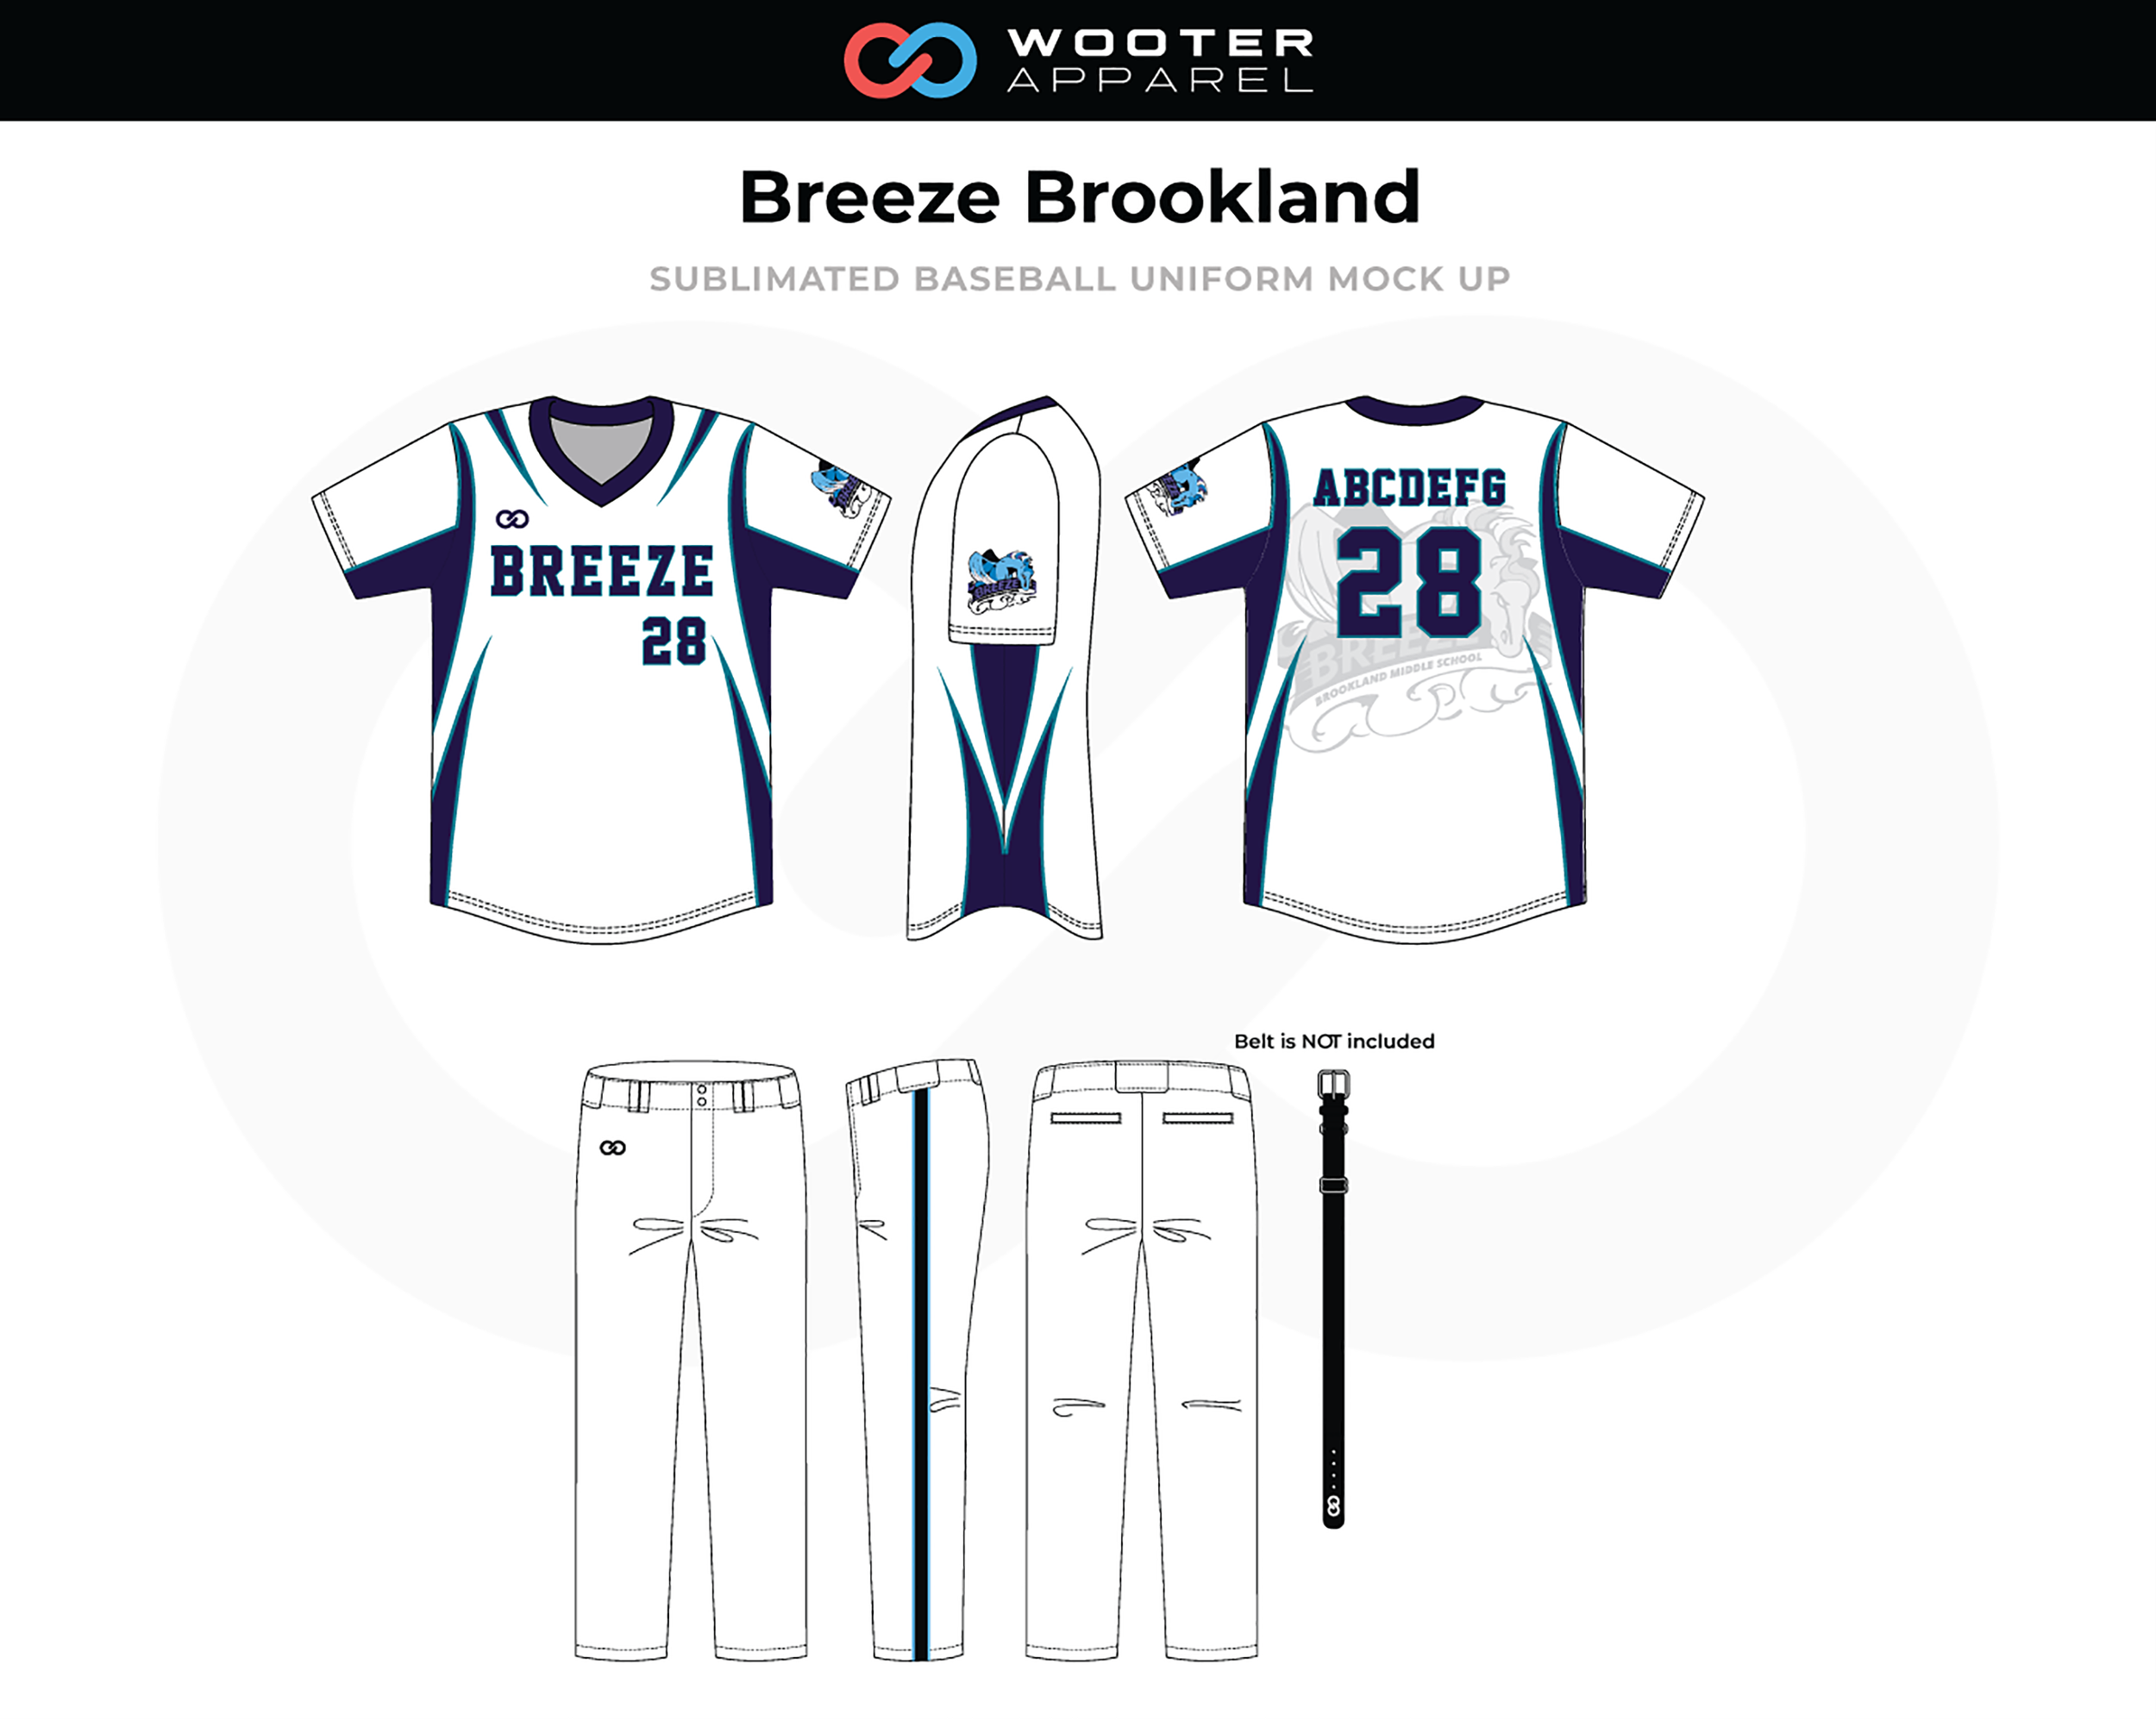 Breeze-Brookland-Sublimated_Baseball_Uniform_v1.png